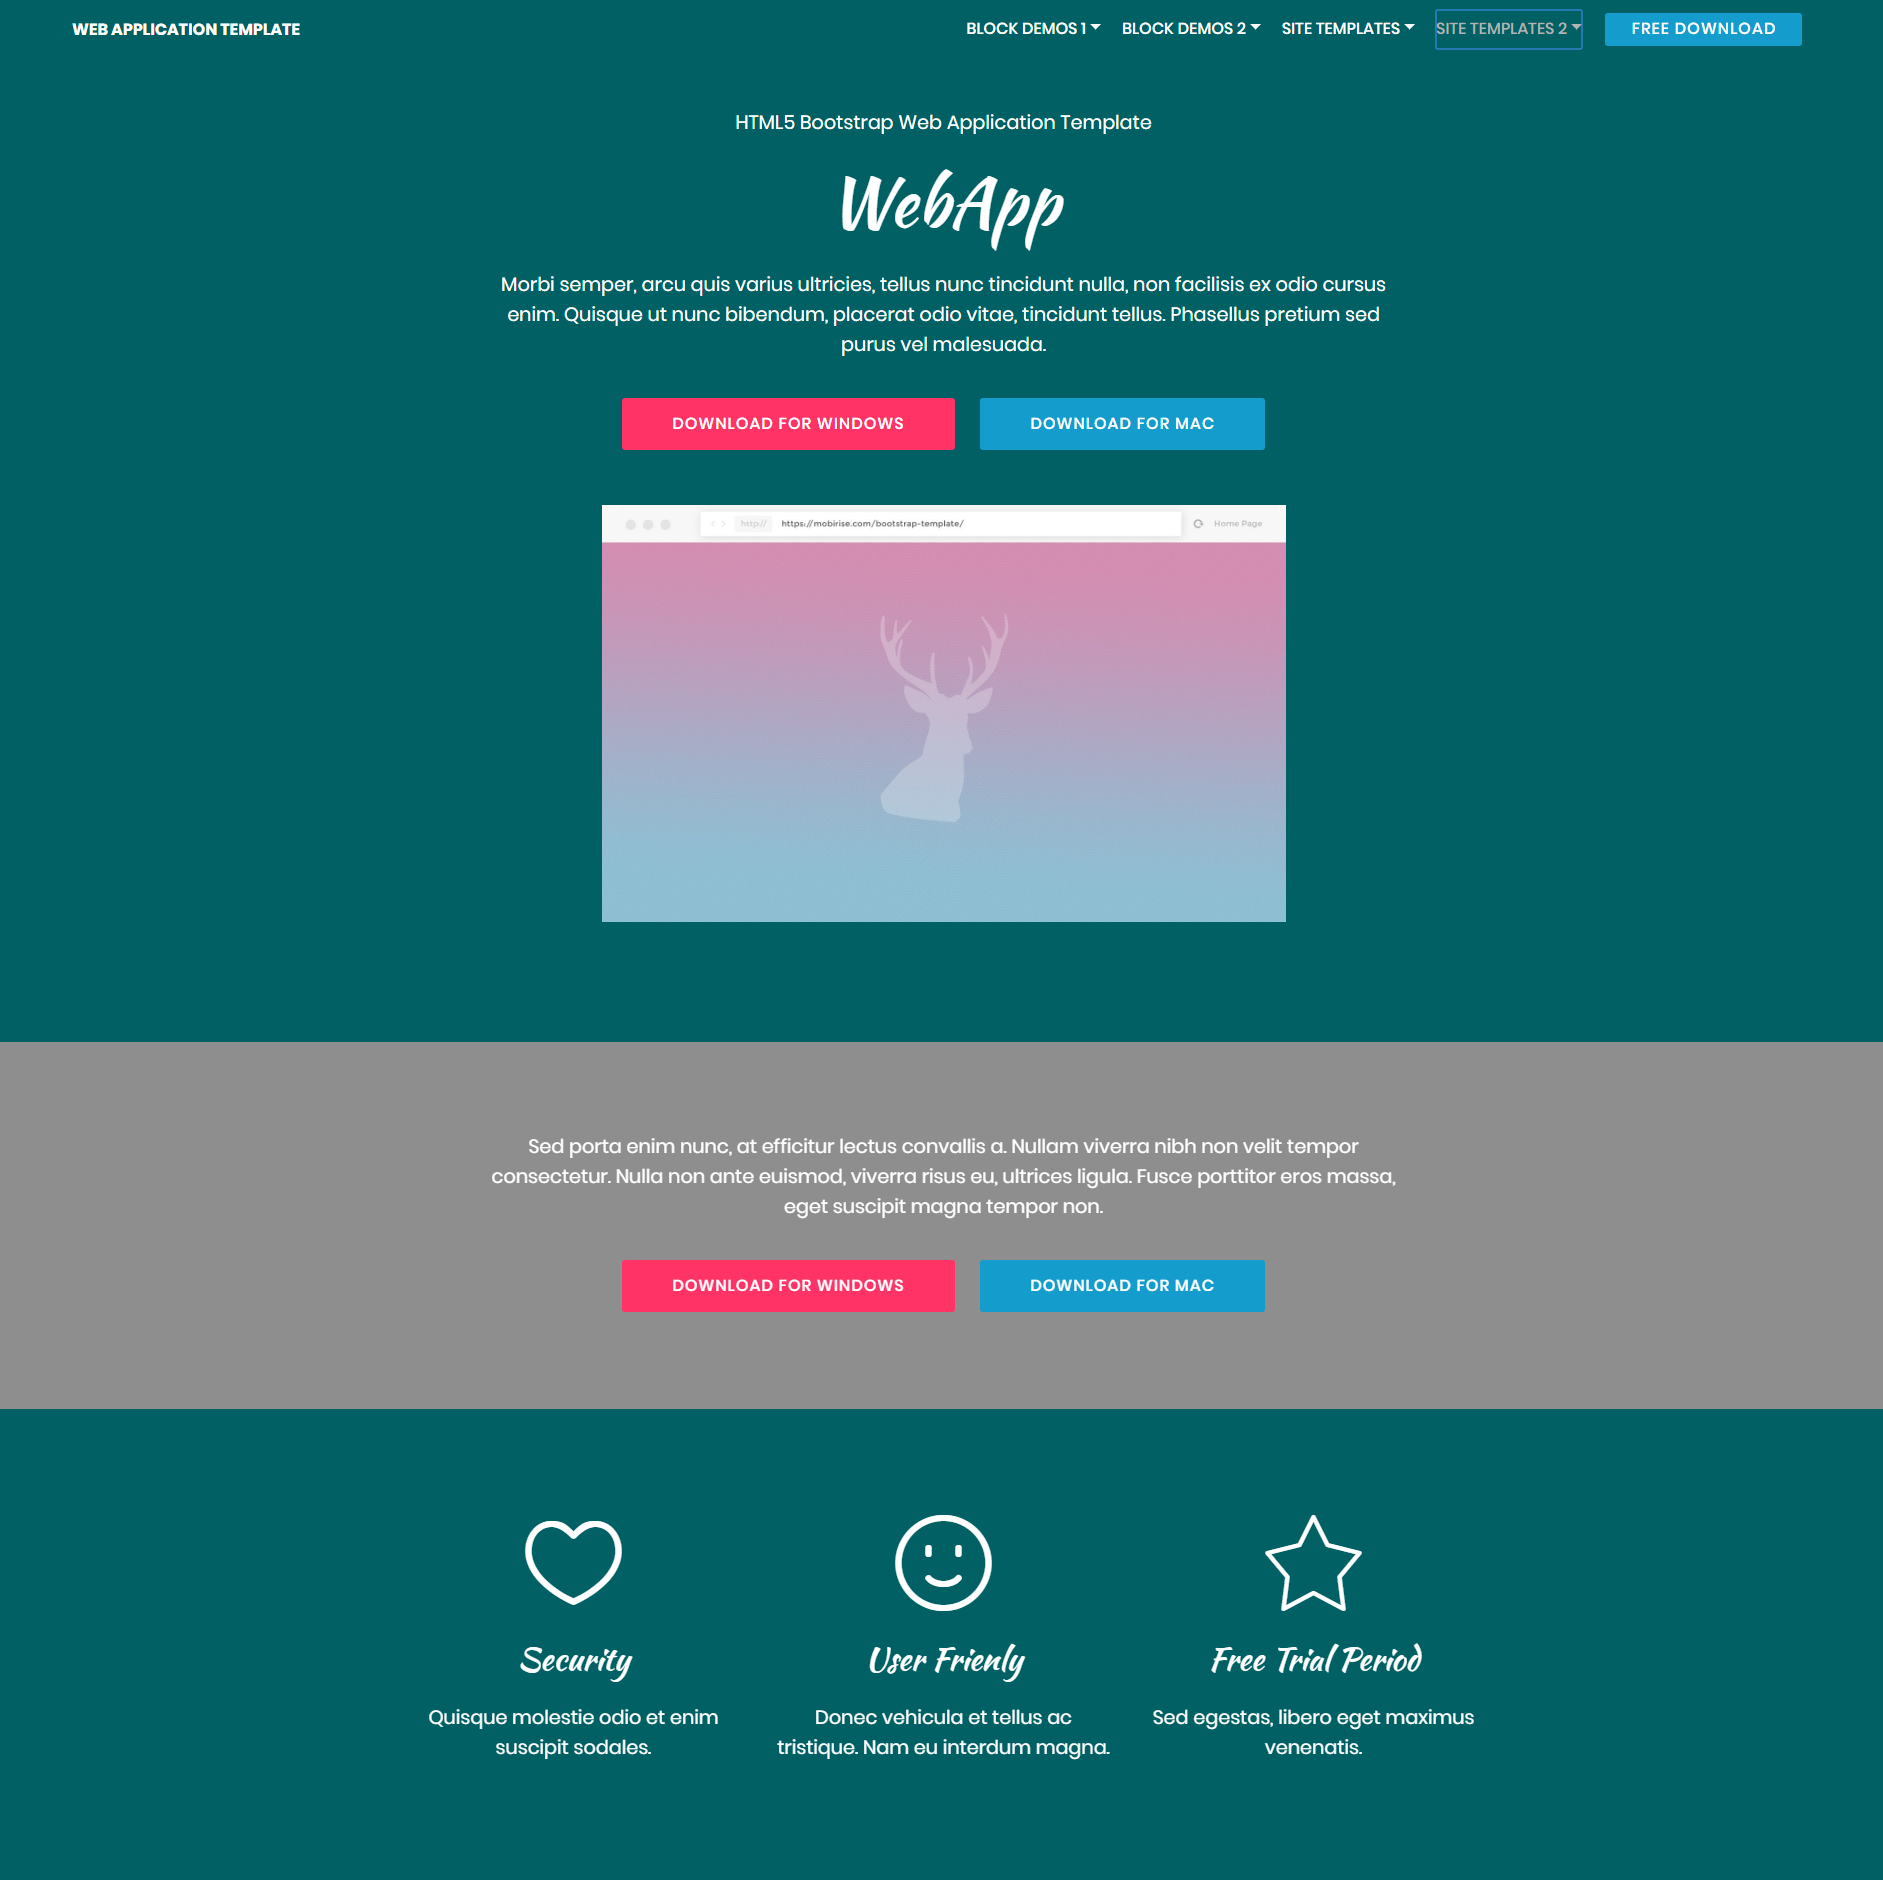 HTML5 Bootstrap Web Application Themes Free Template Download